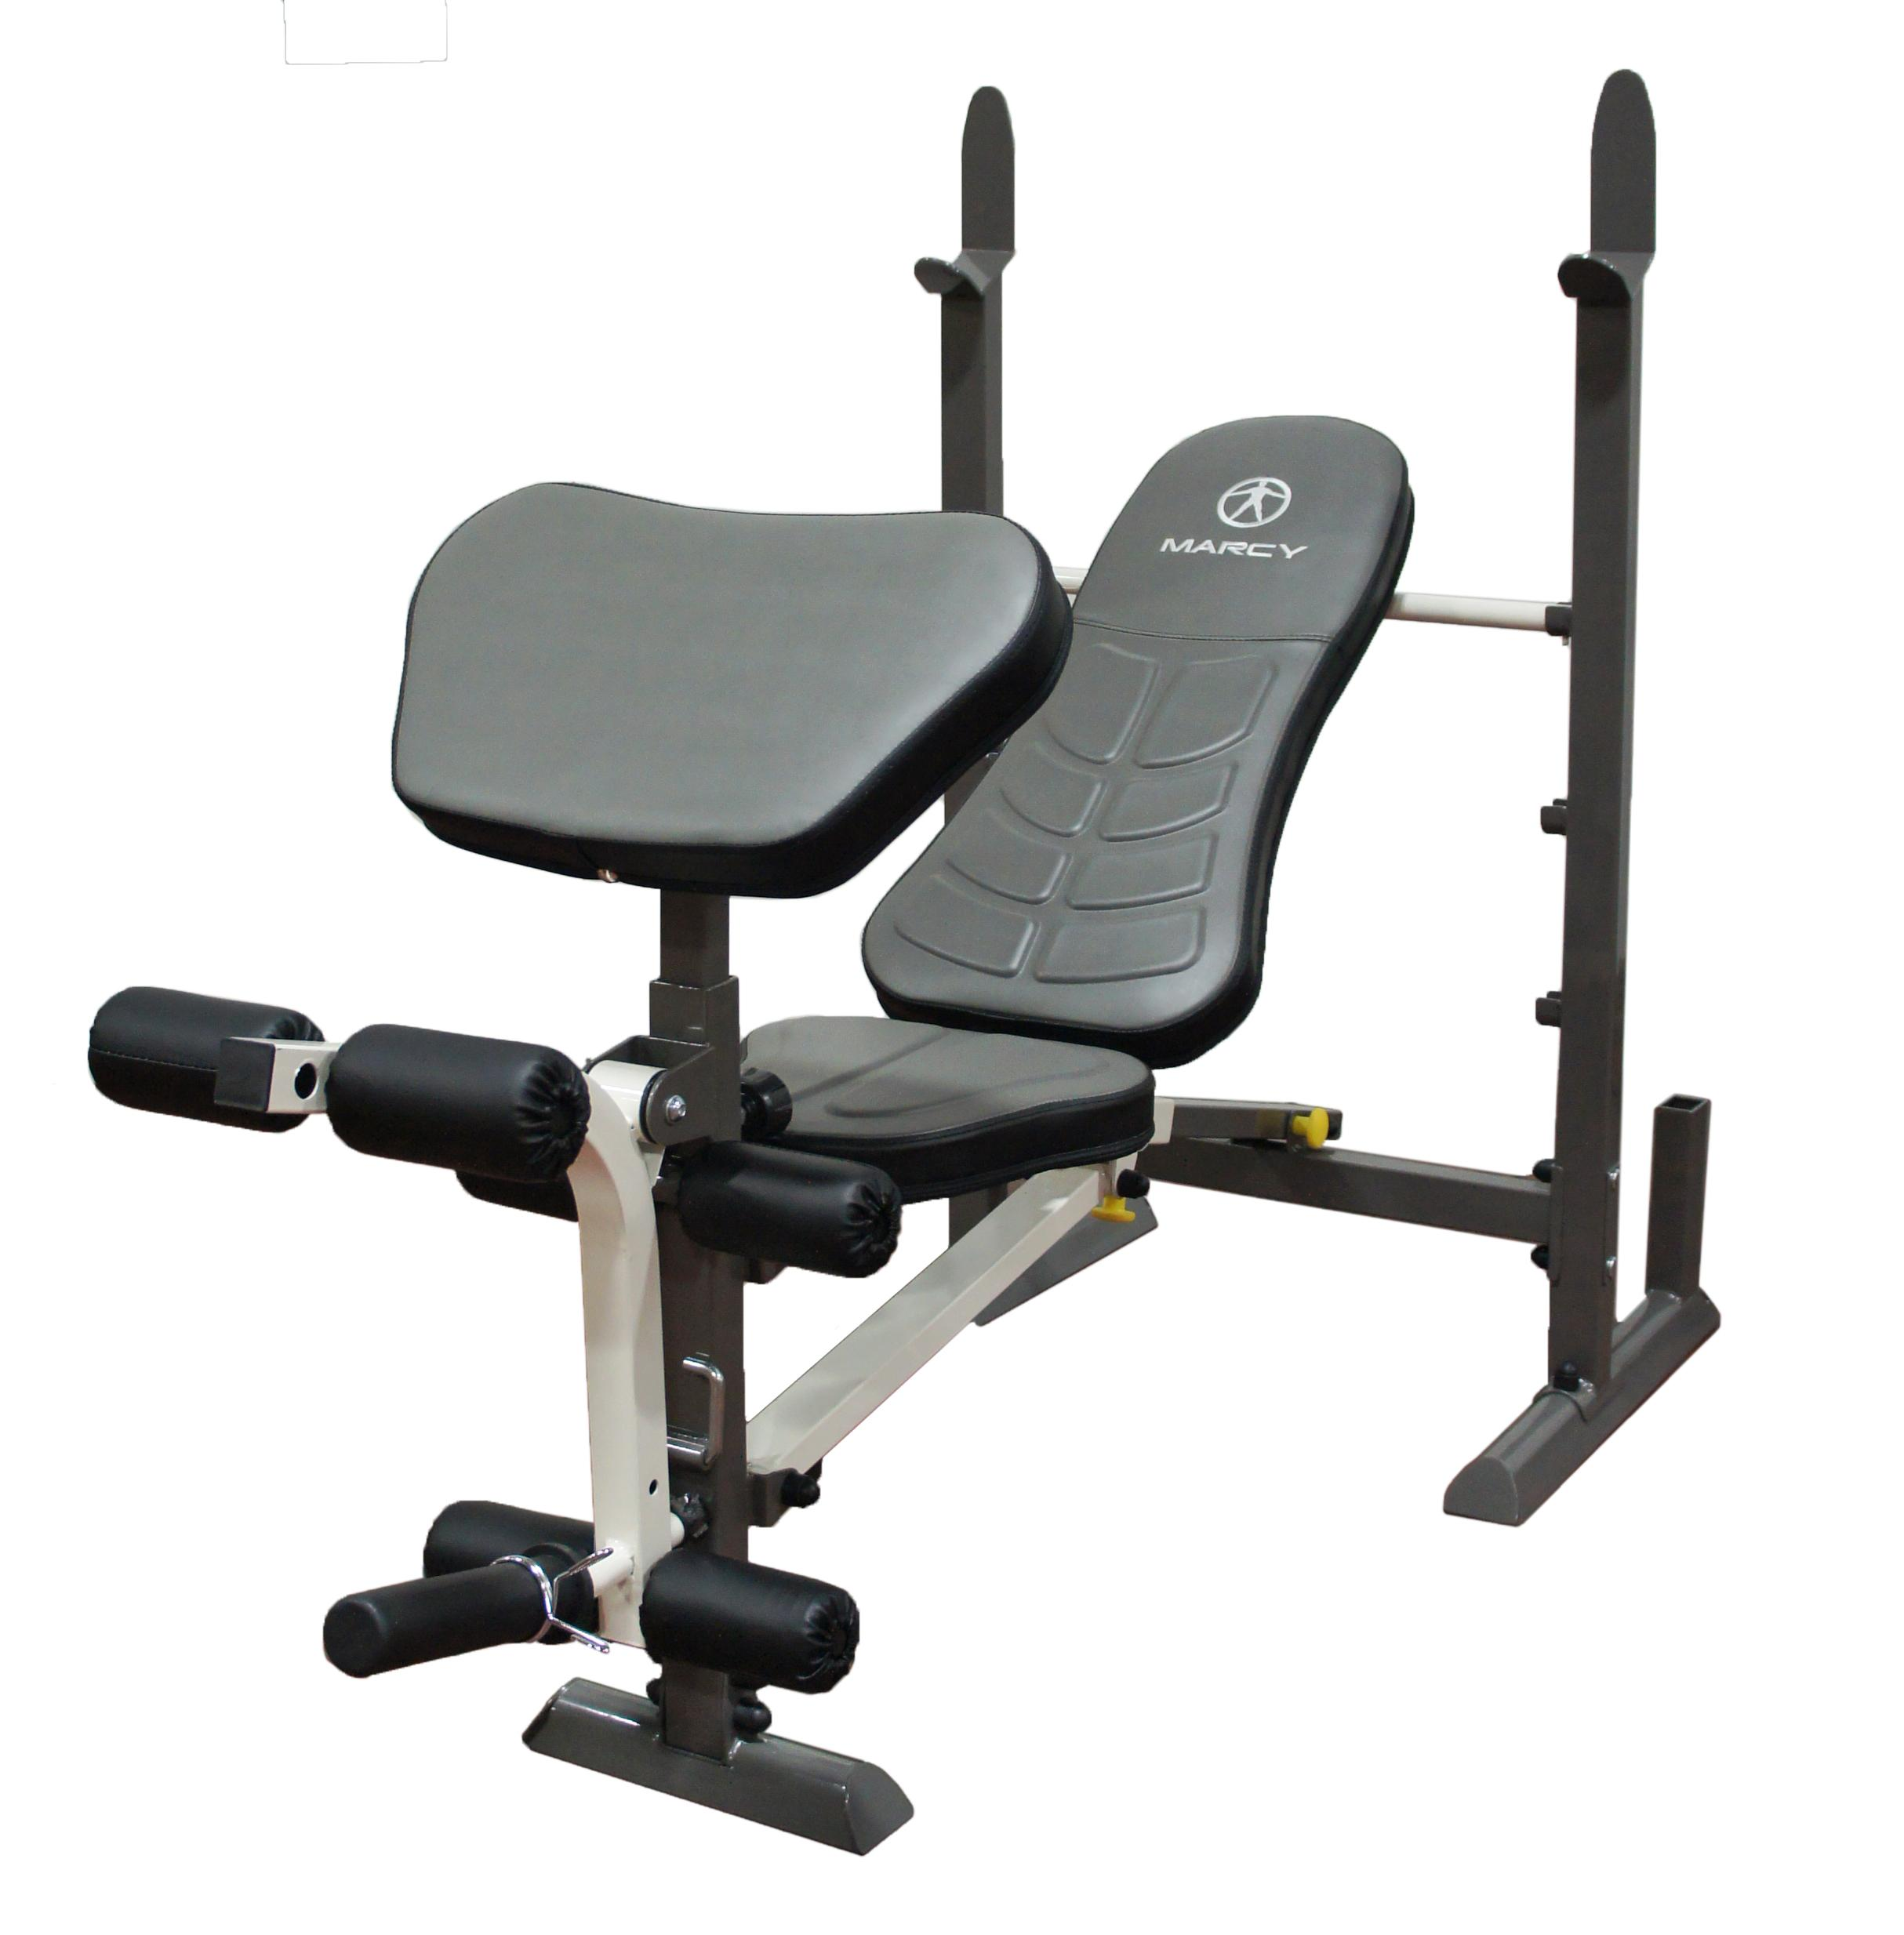 sports set bench weights co dp weight mwb one and amazon with outdoors uk starter kg marcy size black